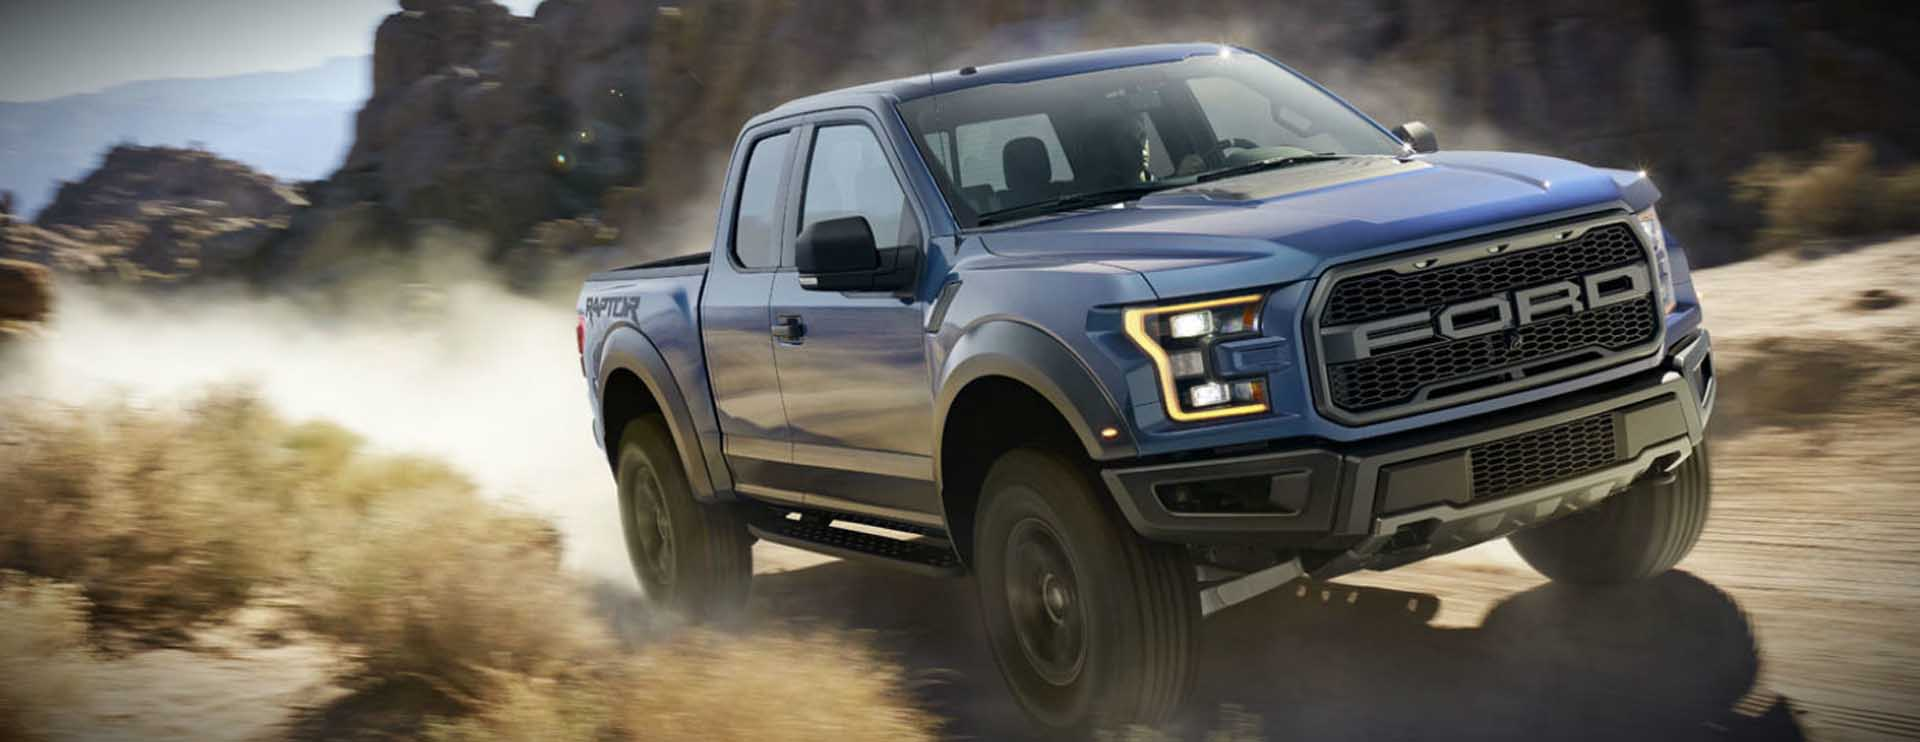 Ford f150s for sale lansing michigan area raptor xlt fx4